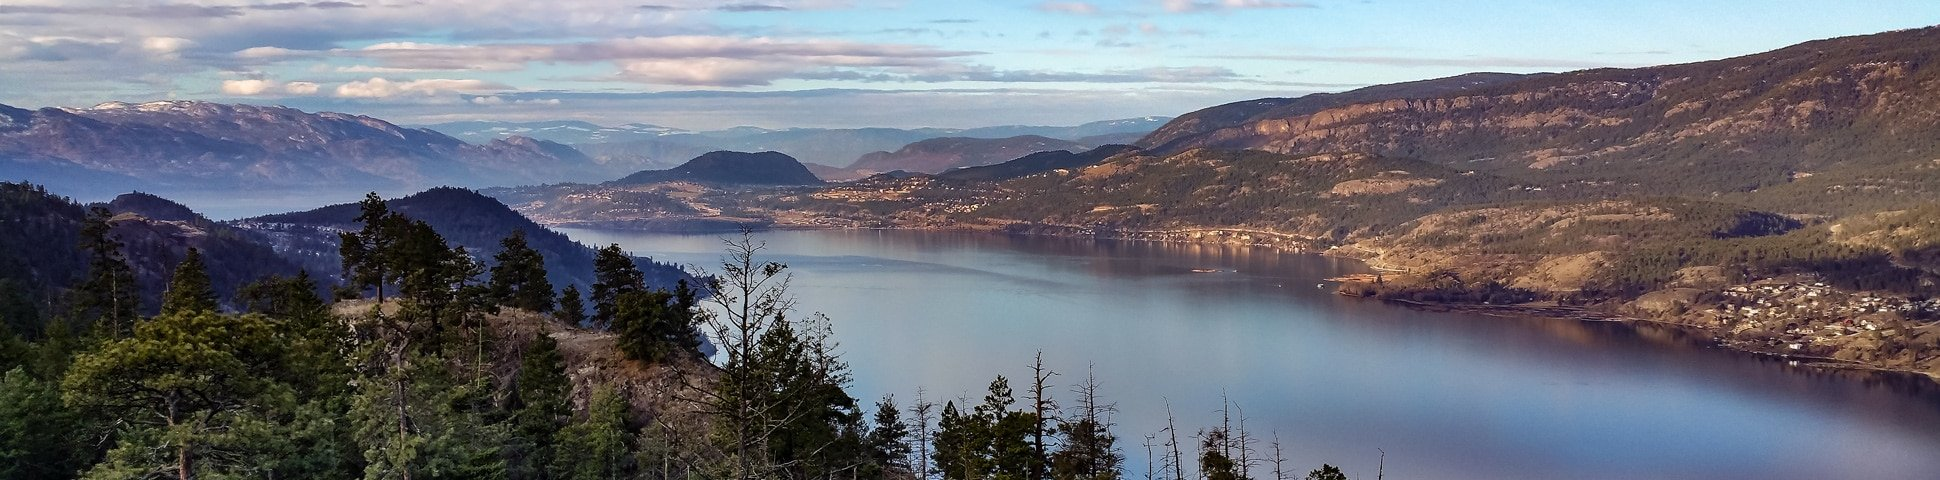 10 Epic Day Trips from Kelowna For Your Bucket List